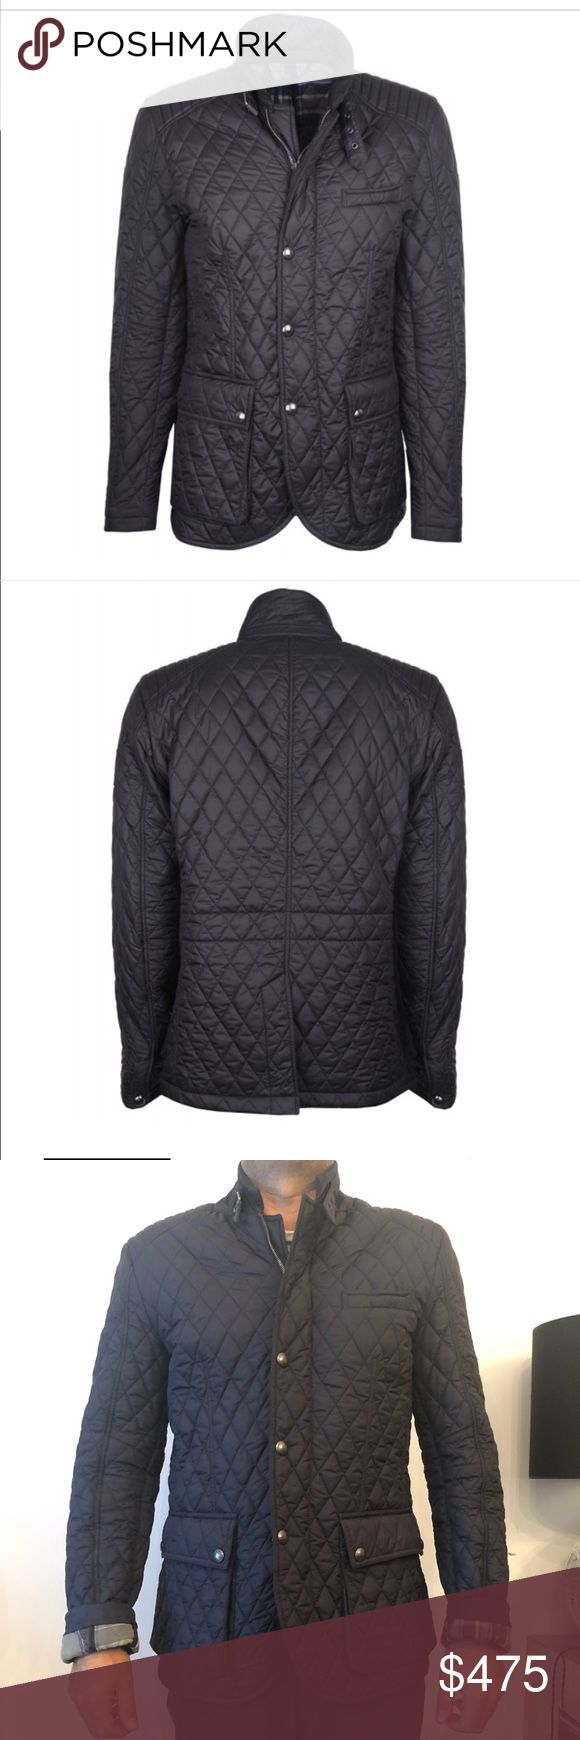 Belstaff Men's quilted Blazer Jacket Ink Blue Belstaff Petersham Quilted Blazer. pairs a traditional quilted jacket with Moto racing inspired details. It is tailored to provide a contemporary, fitted shape with a rear vent to allow ease of movement. classic diamond quilted outer is mixed with channel stitching to the shoulders along with the narrow collar and buckled throat latch. Has a concealed two way zip fastening and water resistant finish with lightweight padding. Outer: 100% Polyester…